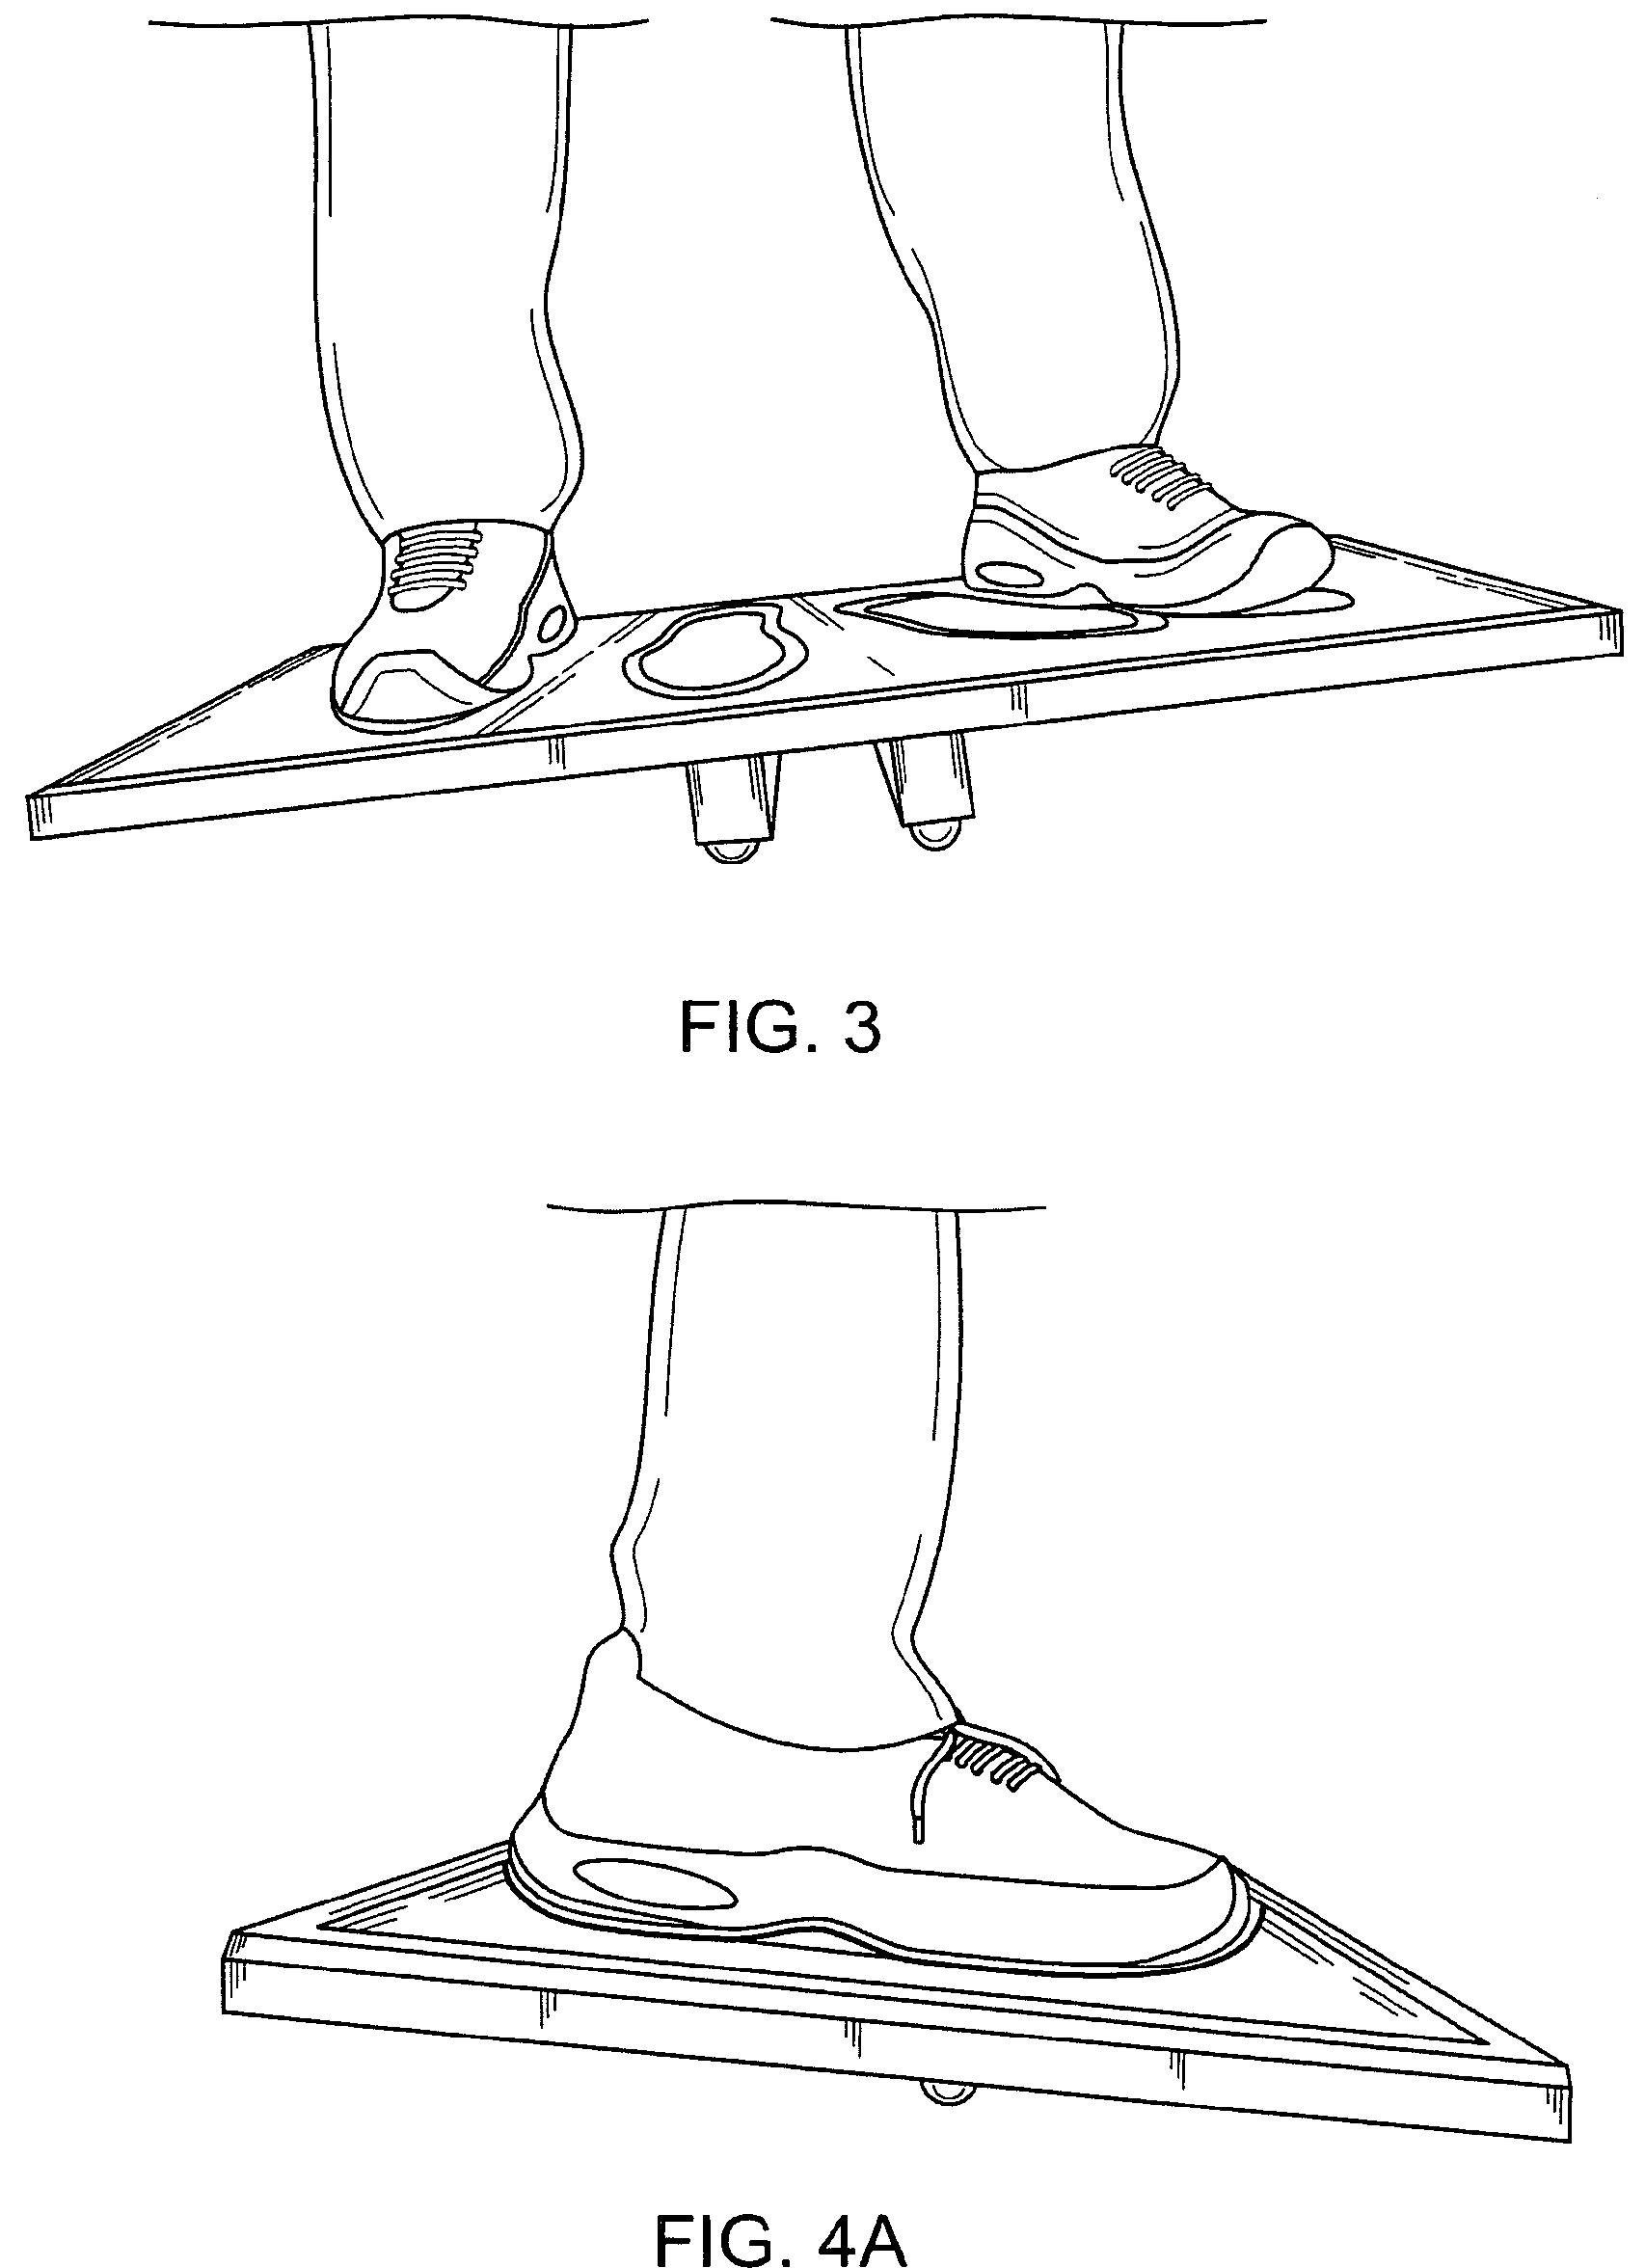 Having Trouble with a Balanced Swing? This Invention May